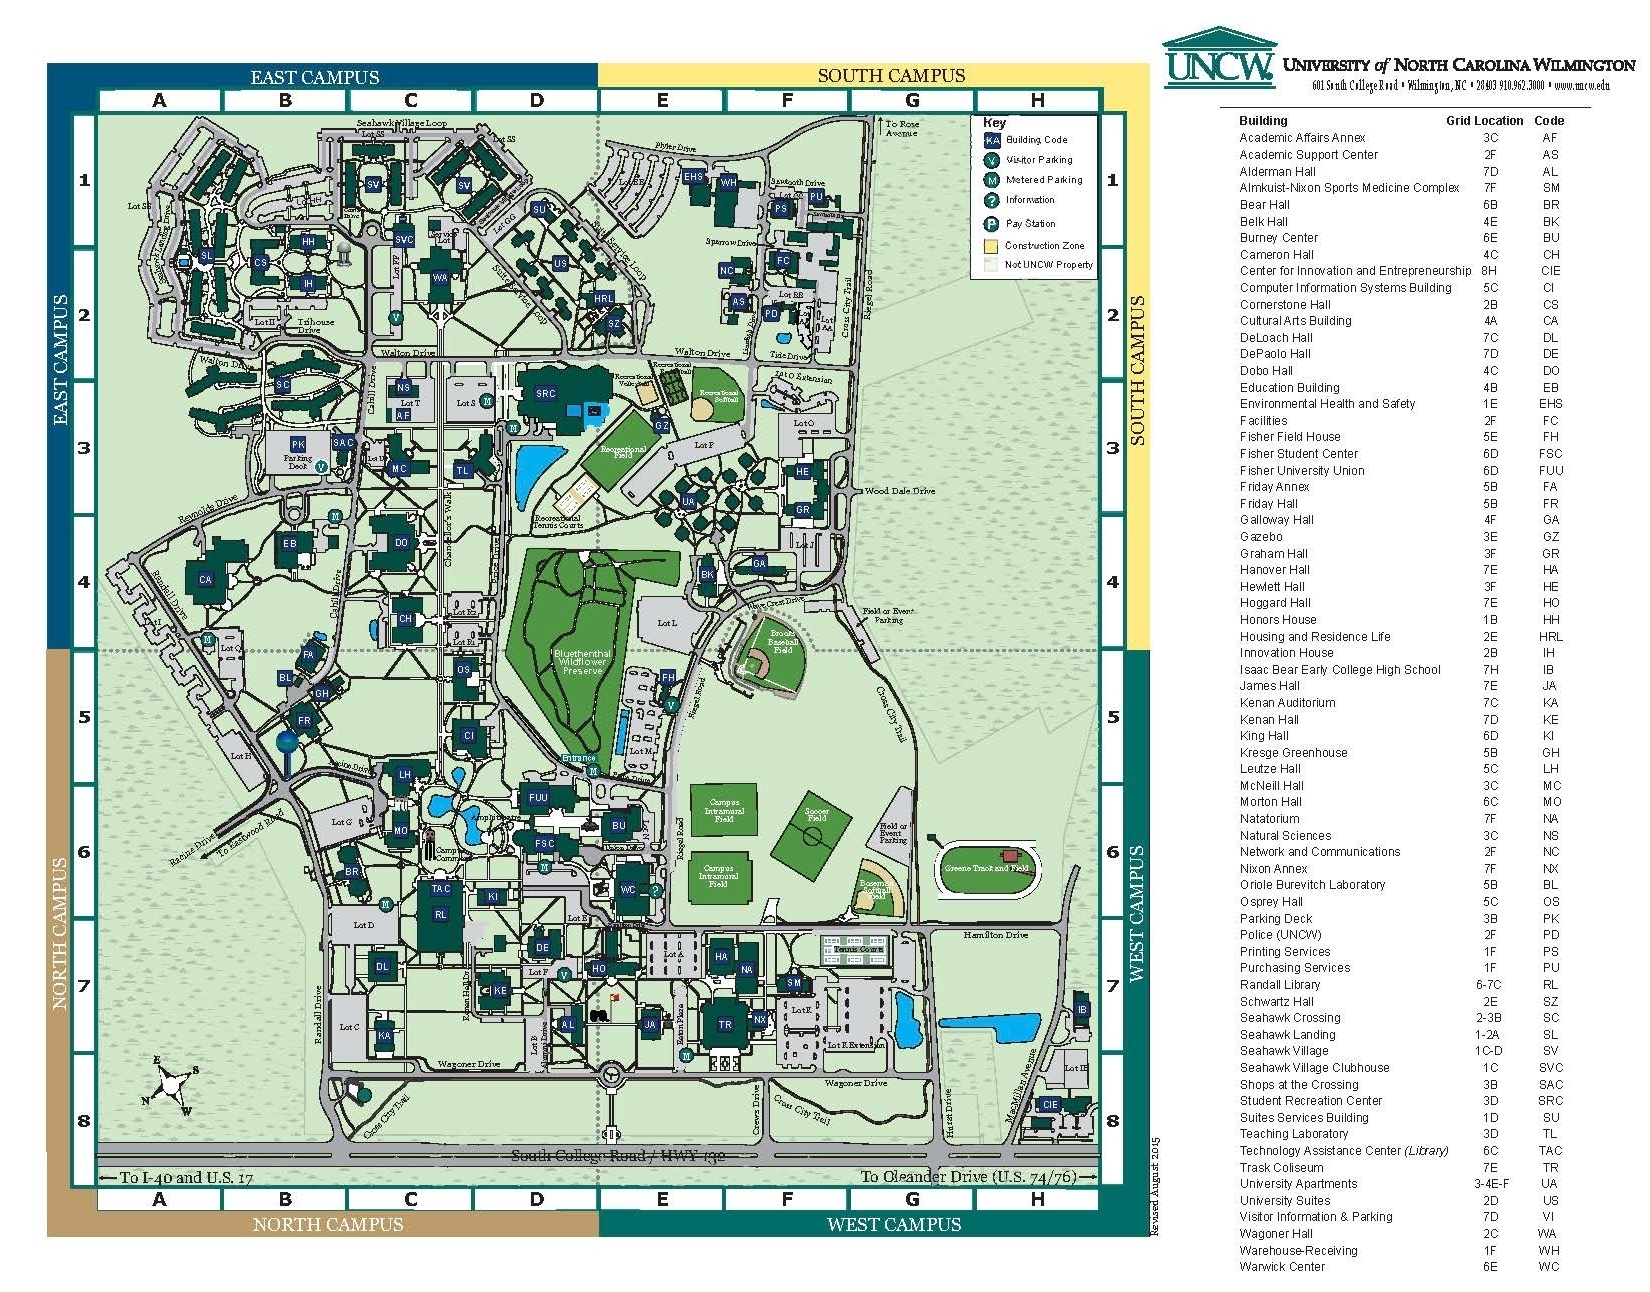 Environmental Sciences: UNCW on stanford building map, south alabama building map, unc building map, radford building map, tennessee building map, auburn building map, nccu building map, pepperdine building map, vanderbilt building map, sfsu building map, northeastern building map, usc building map, american university building map, coastal carolina building map, wichita state building map, indiana building map, old dominion building map, georgia tech building map, csuf building map, clemson building map,